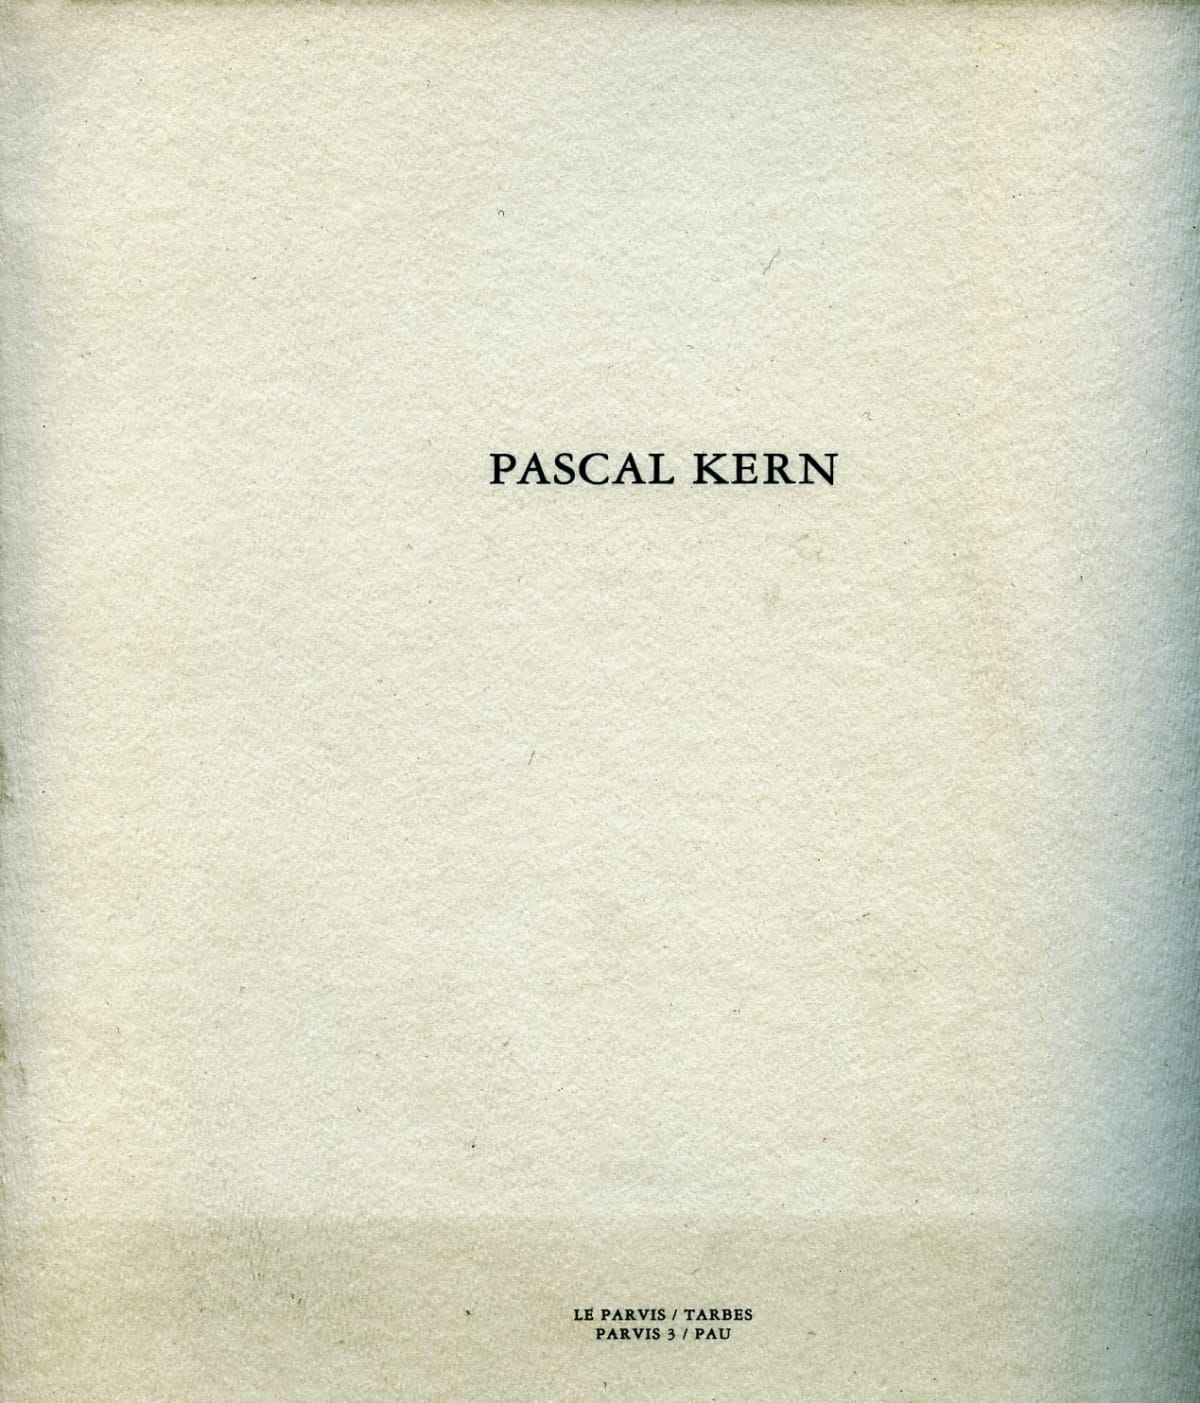 Pascal Kern : Sculpture, Culture, Nature